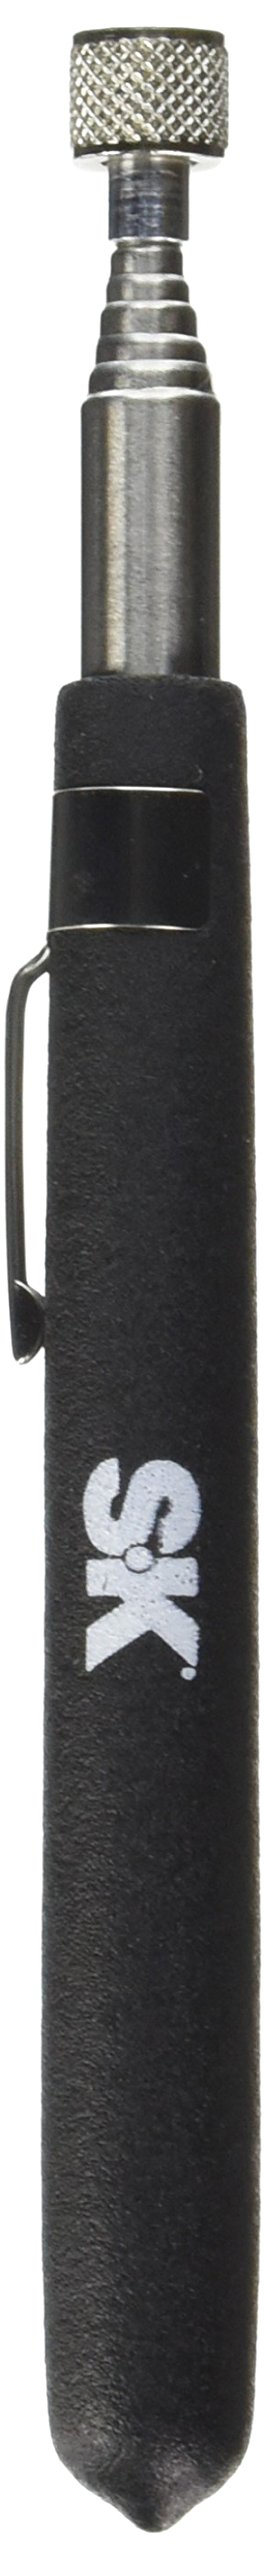 SK Hand Tool 90341 Telescoping Power Magnet, 2.5-Pound